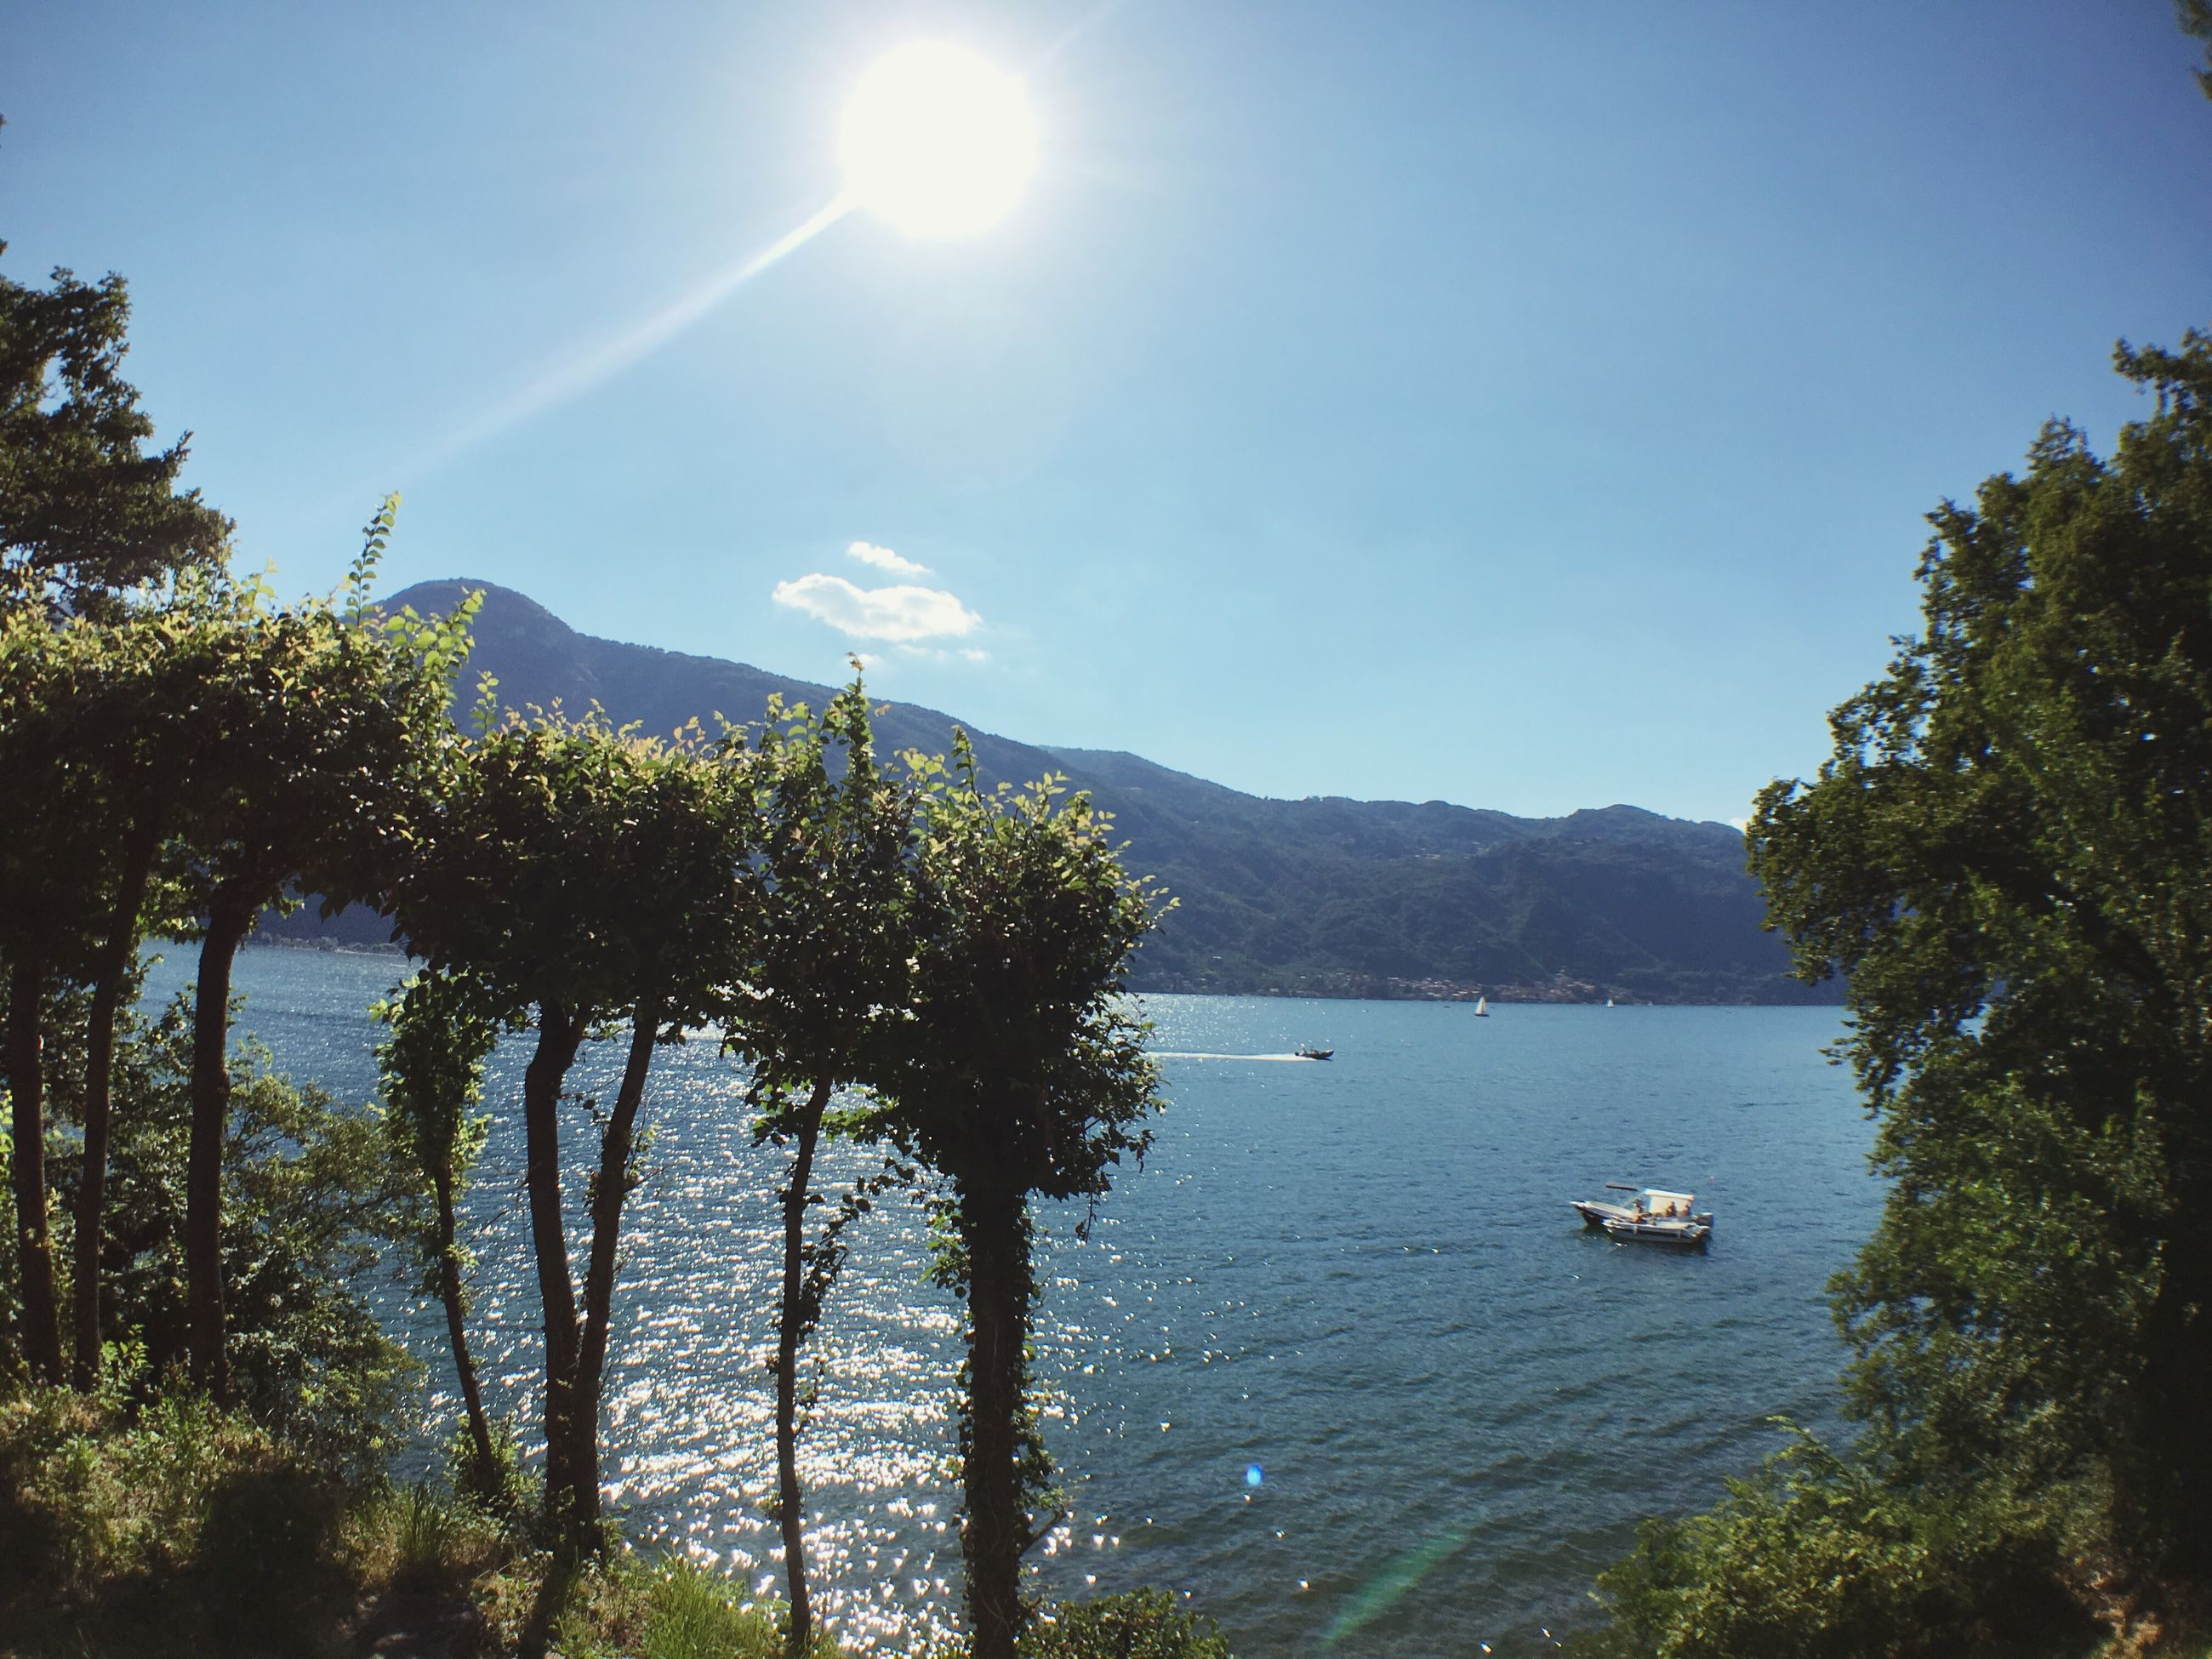 tree, water, nature, sunlight, scenics, nautical vessel, beauty in nature, tranquil scene, tranquility, day, outdoors, lake, mountain, sky, no people, sun